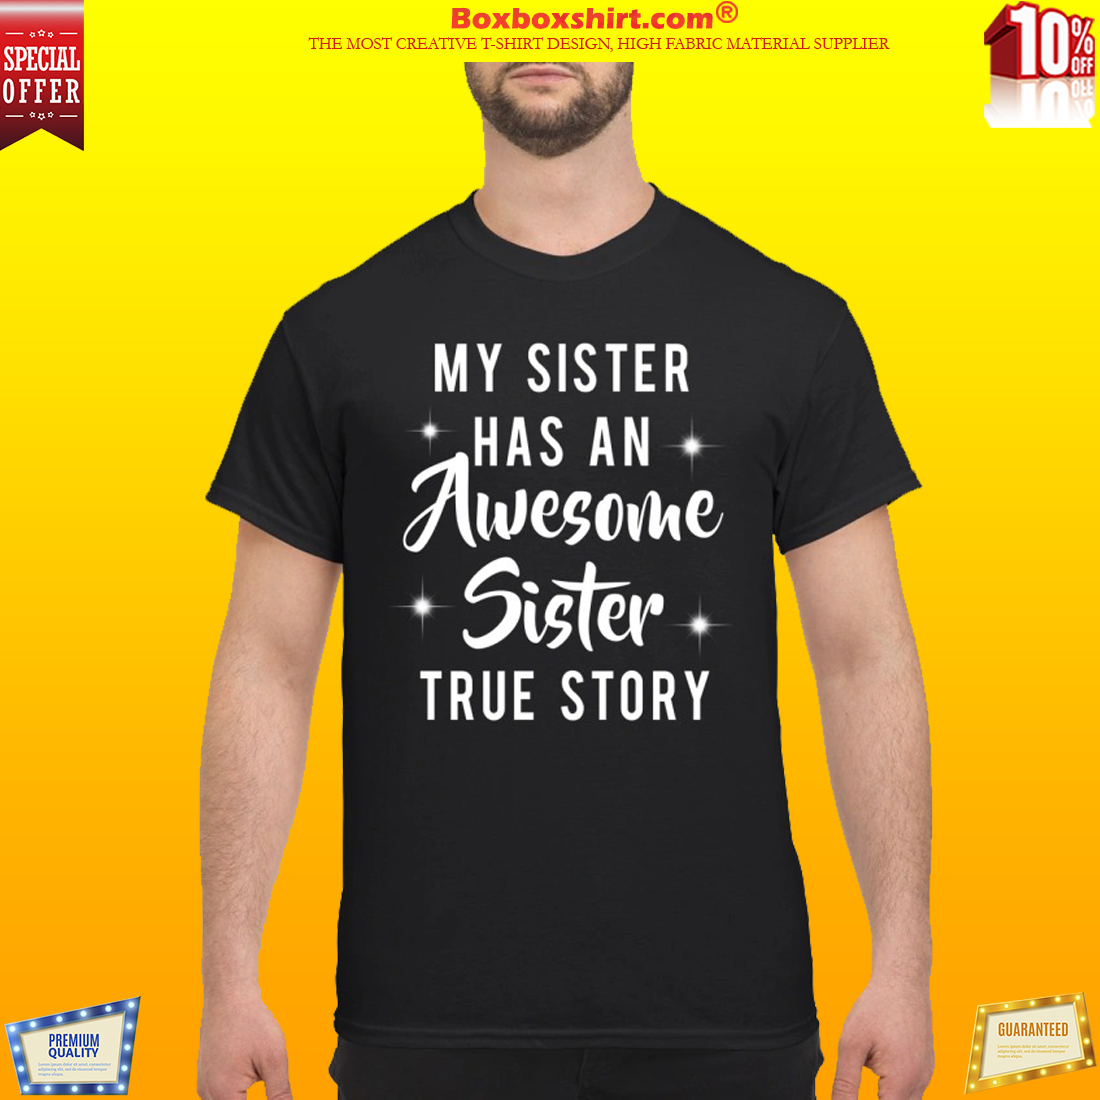 My sister has an awesome sister true story classic shirt